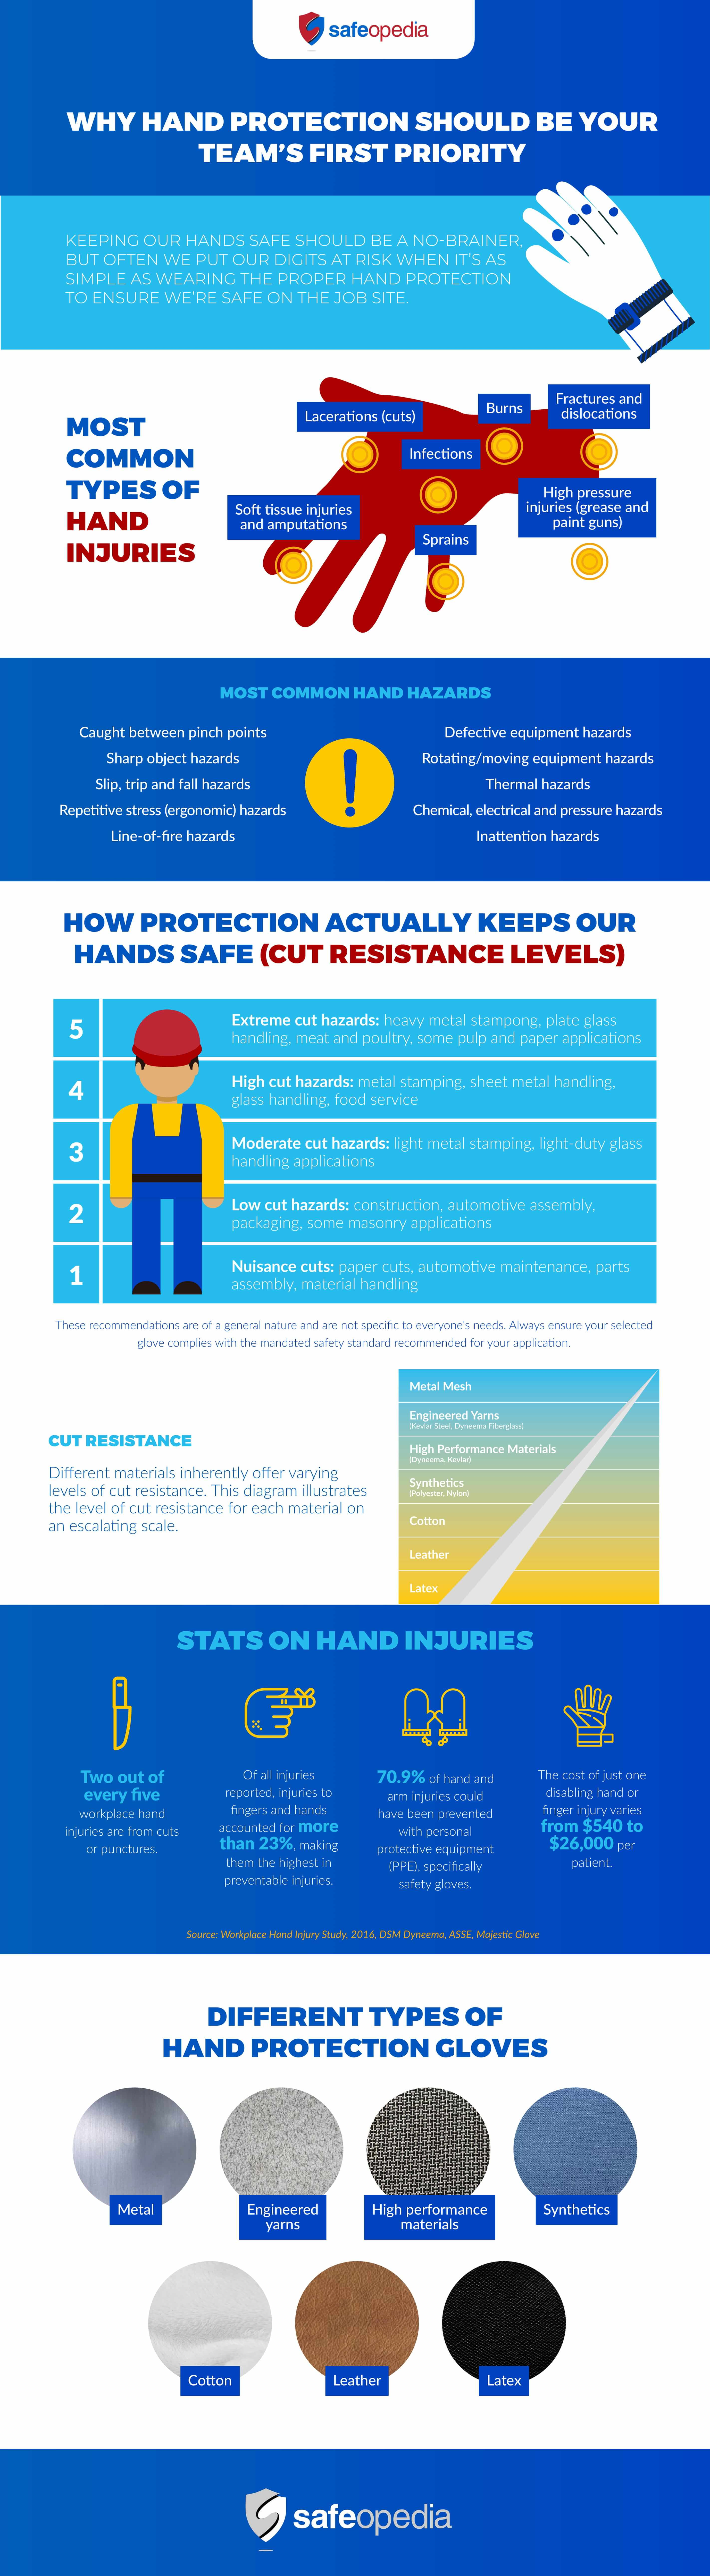 INFOGRAPHIC - Why Hand Protection Should Be Your Team's First Priority